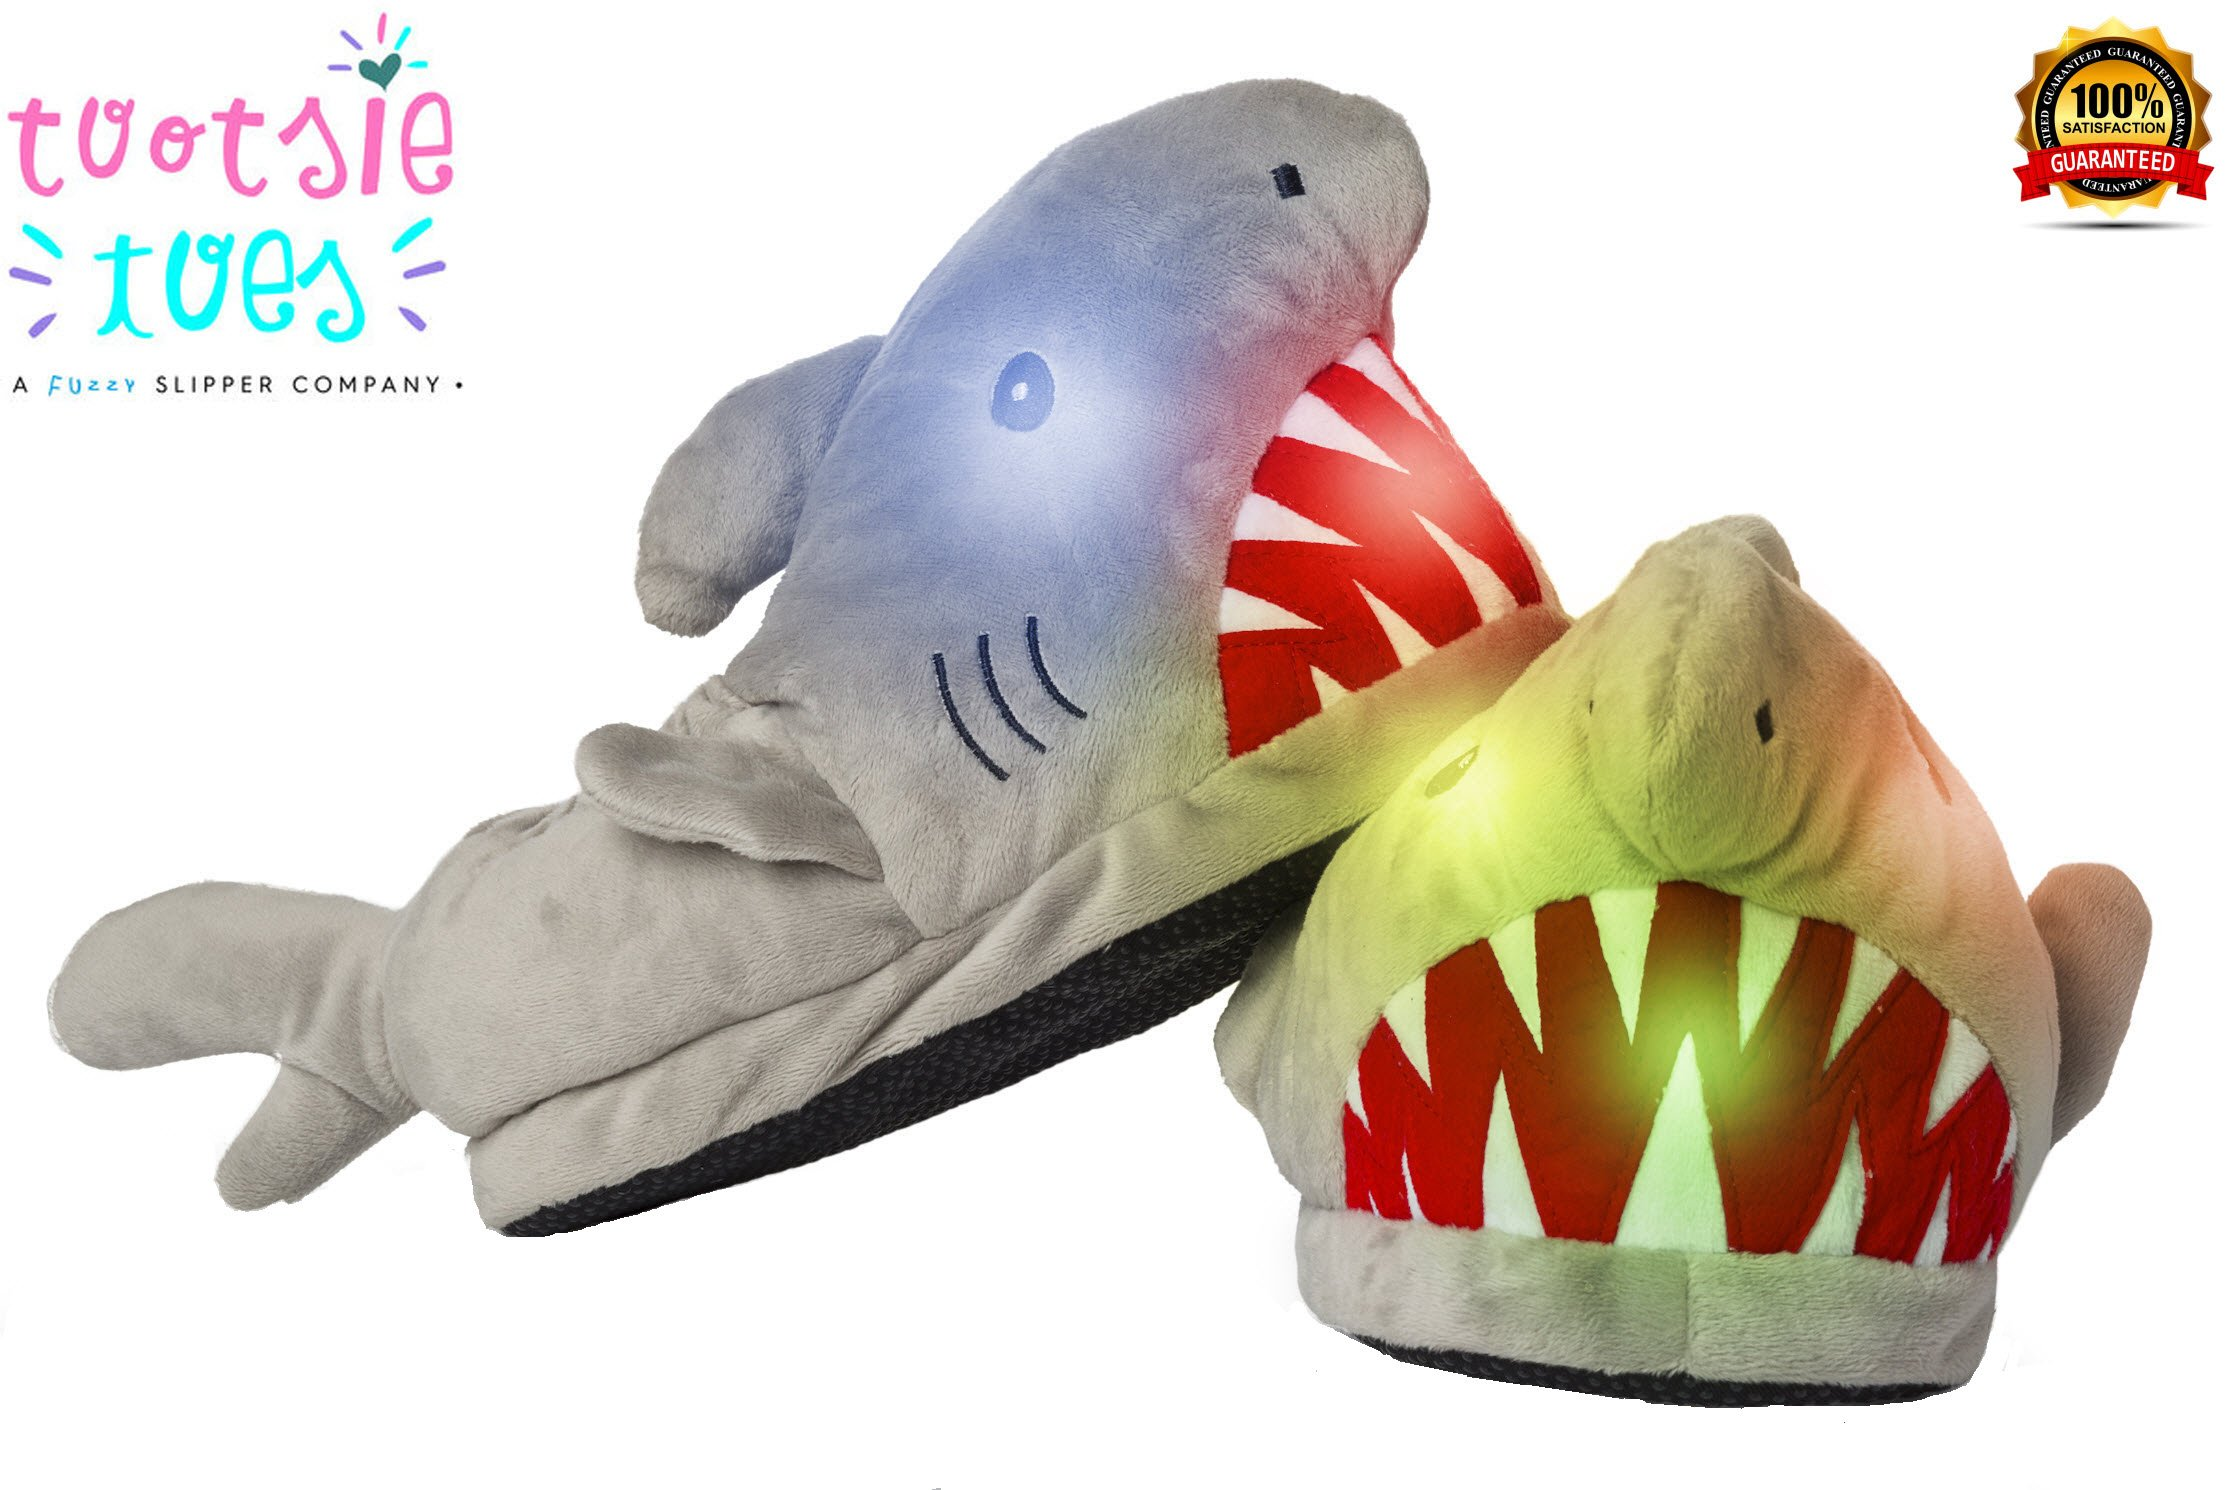 Funny Furry Fuzzy Fun Animal Character Shark LED Light-Up CHILD Slipper FOR Boys or Girls or Kids Unisex - Child Ages 2-10